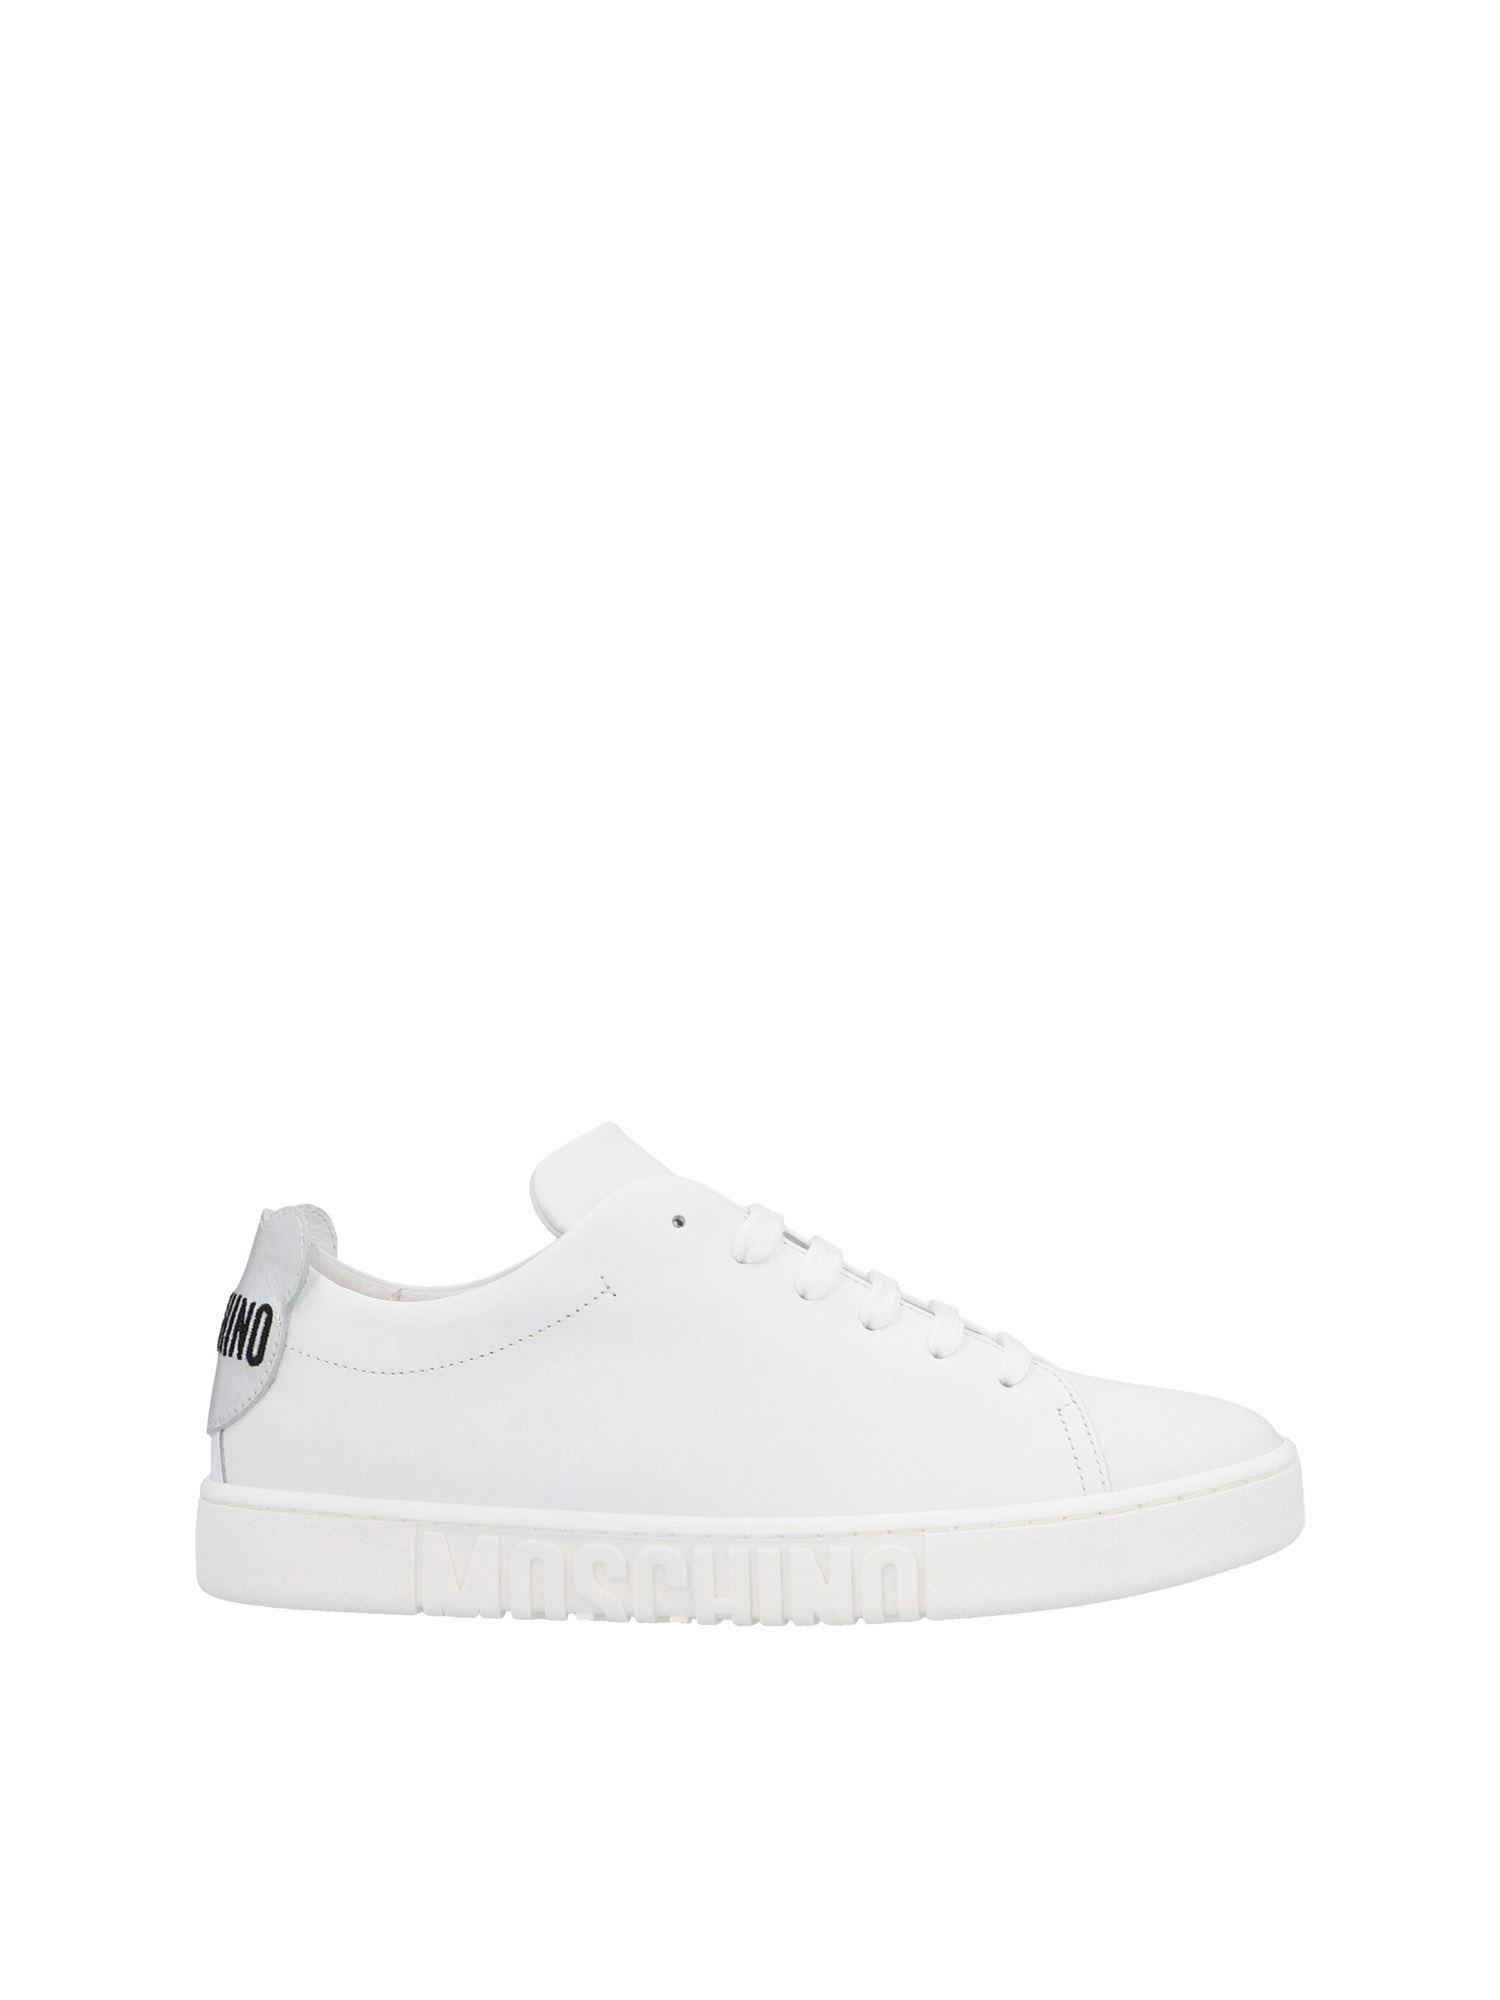 Moschino TEDDY BEAR SNEAKERS IN WHITE AND SILVER